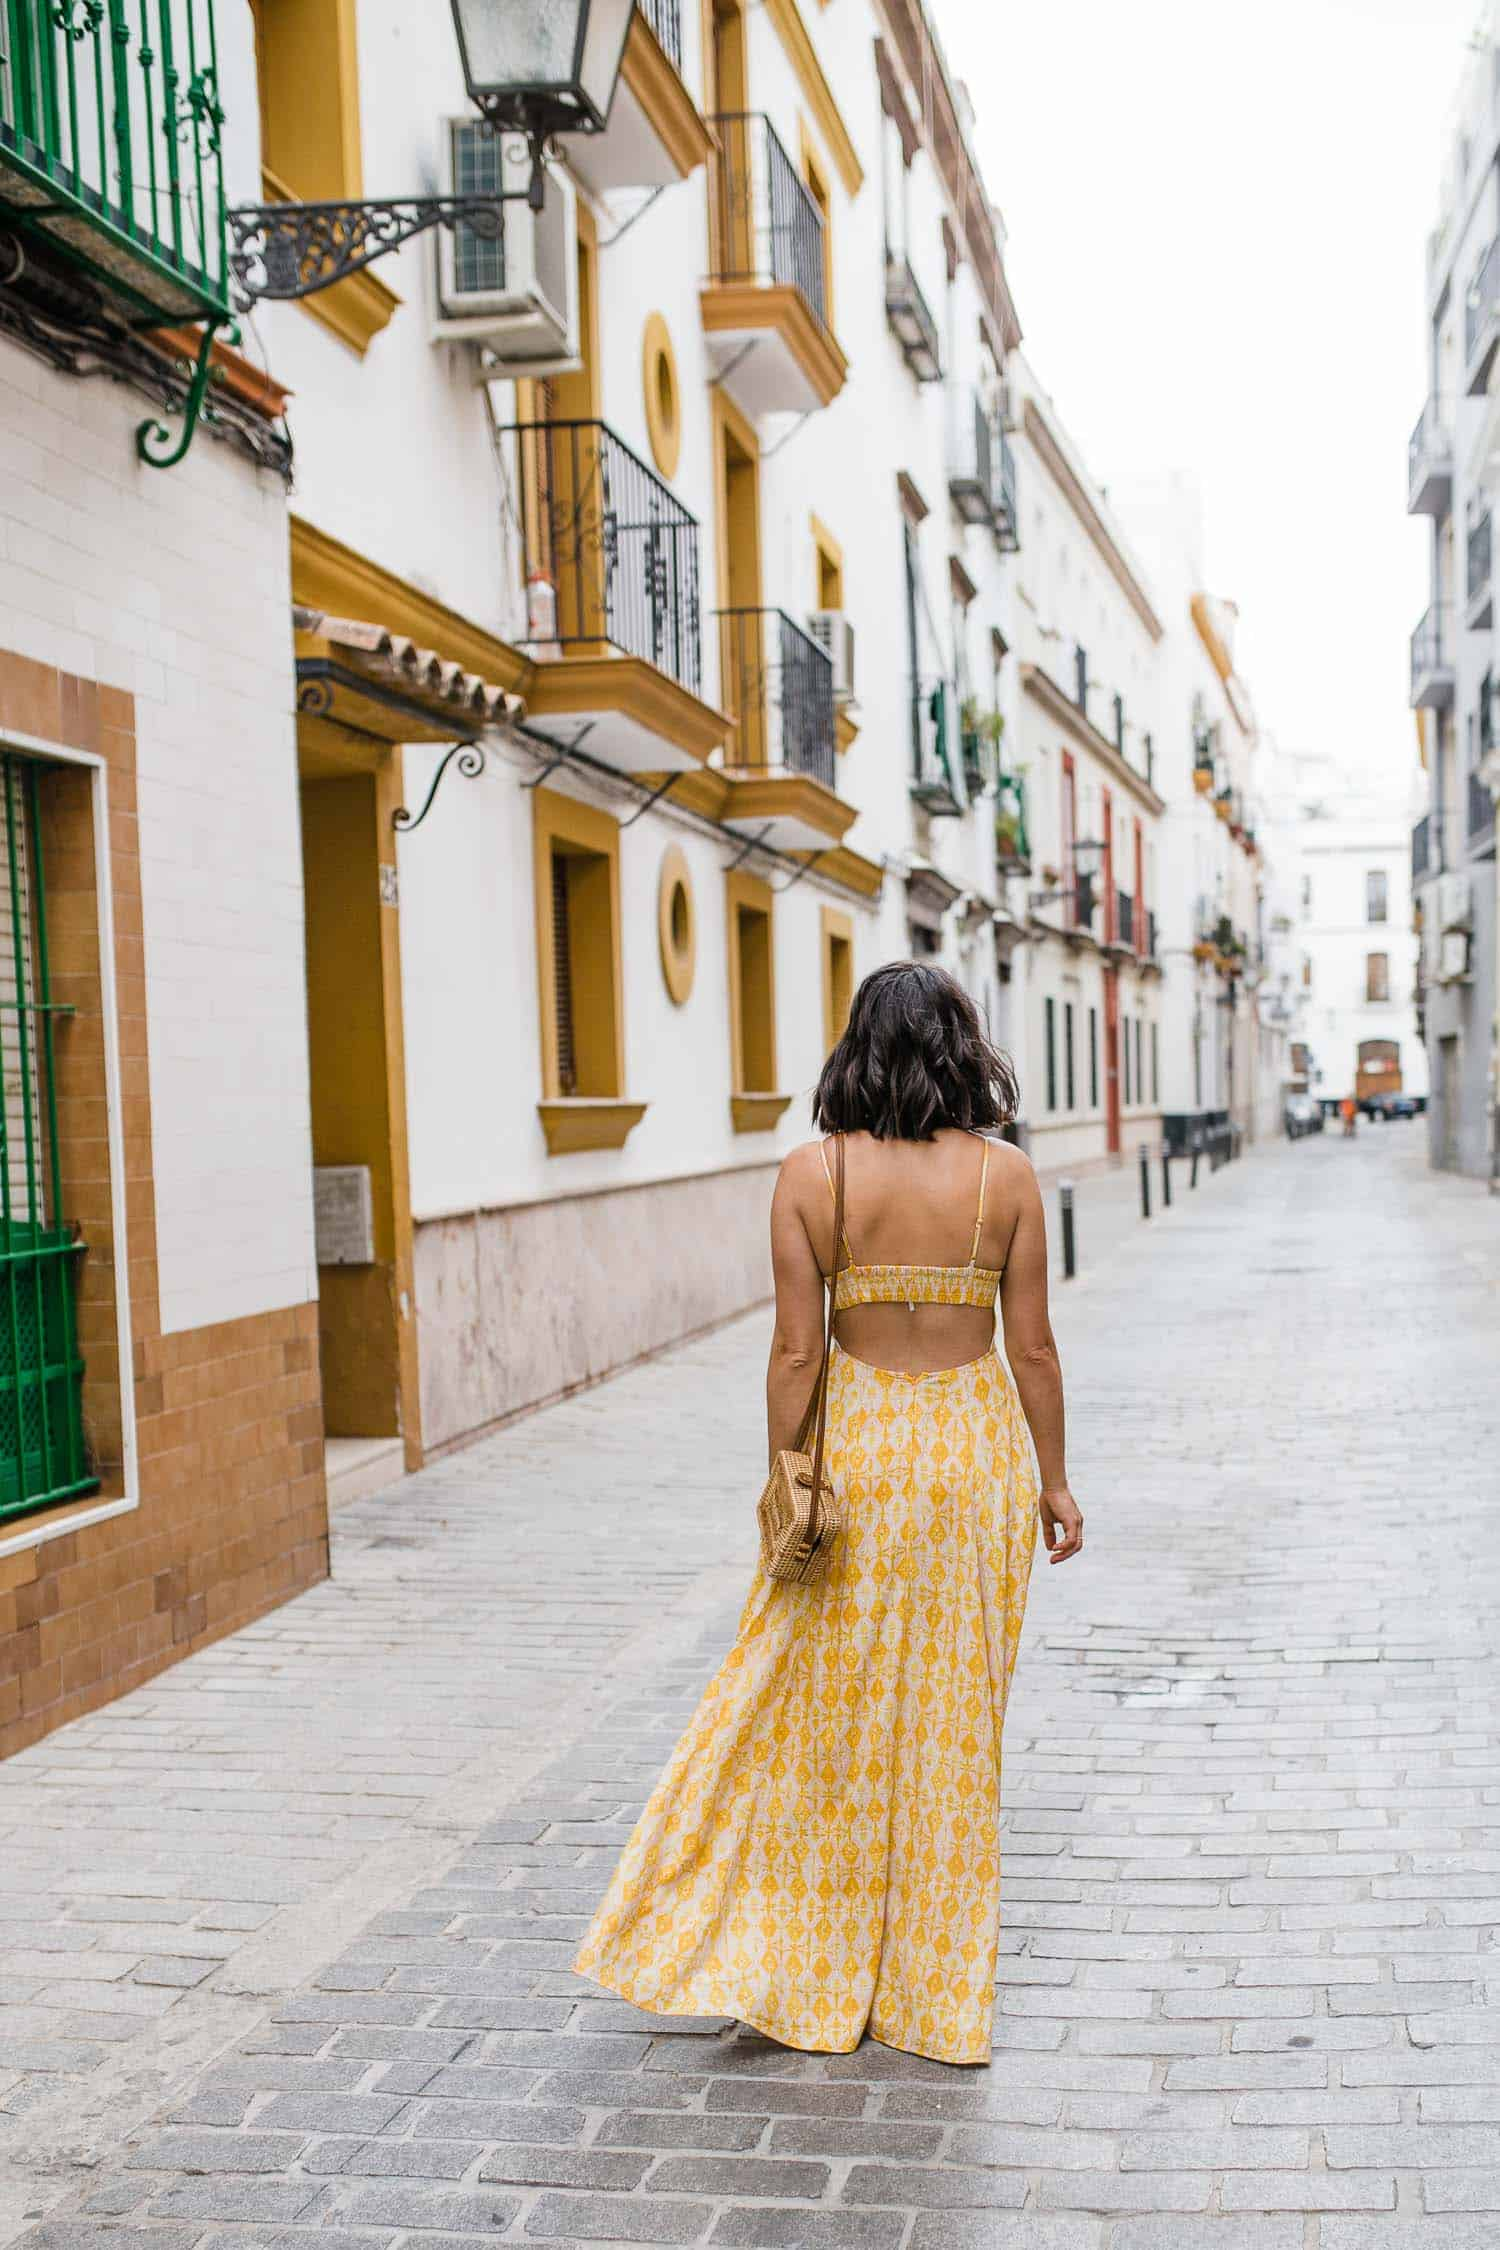 Jessica is wearing a printed Free People Milana maxi dress